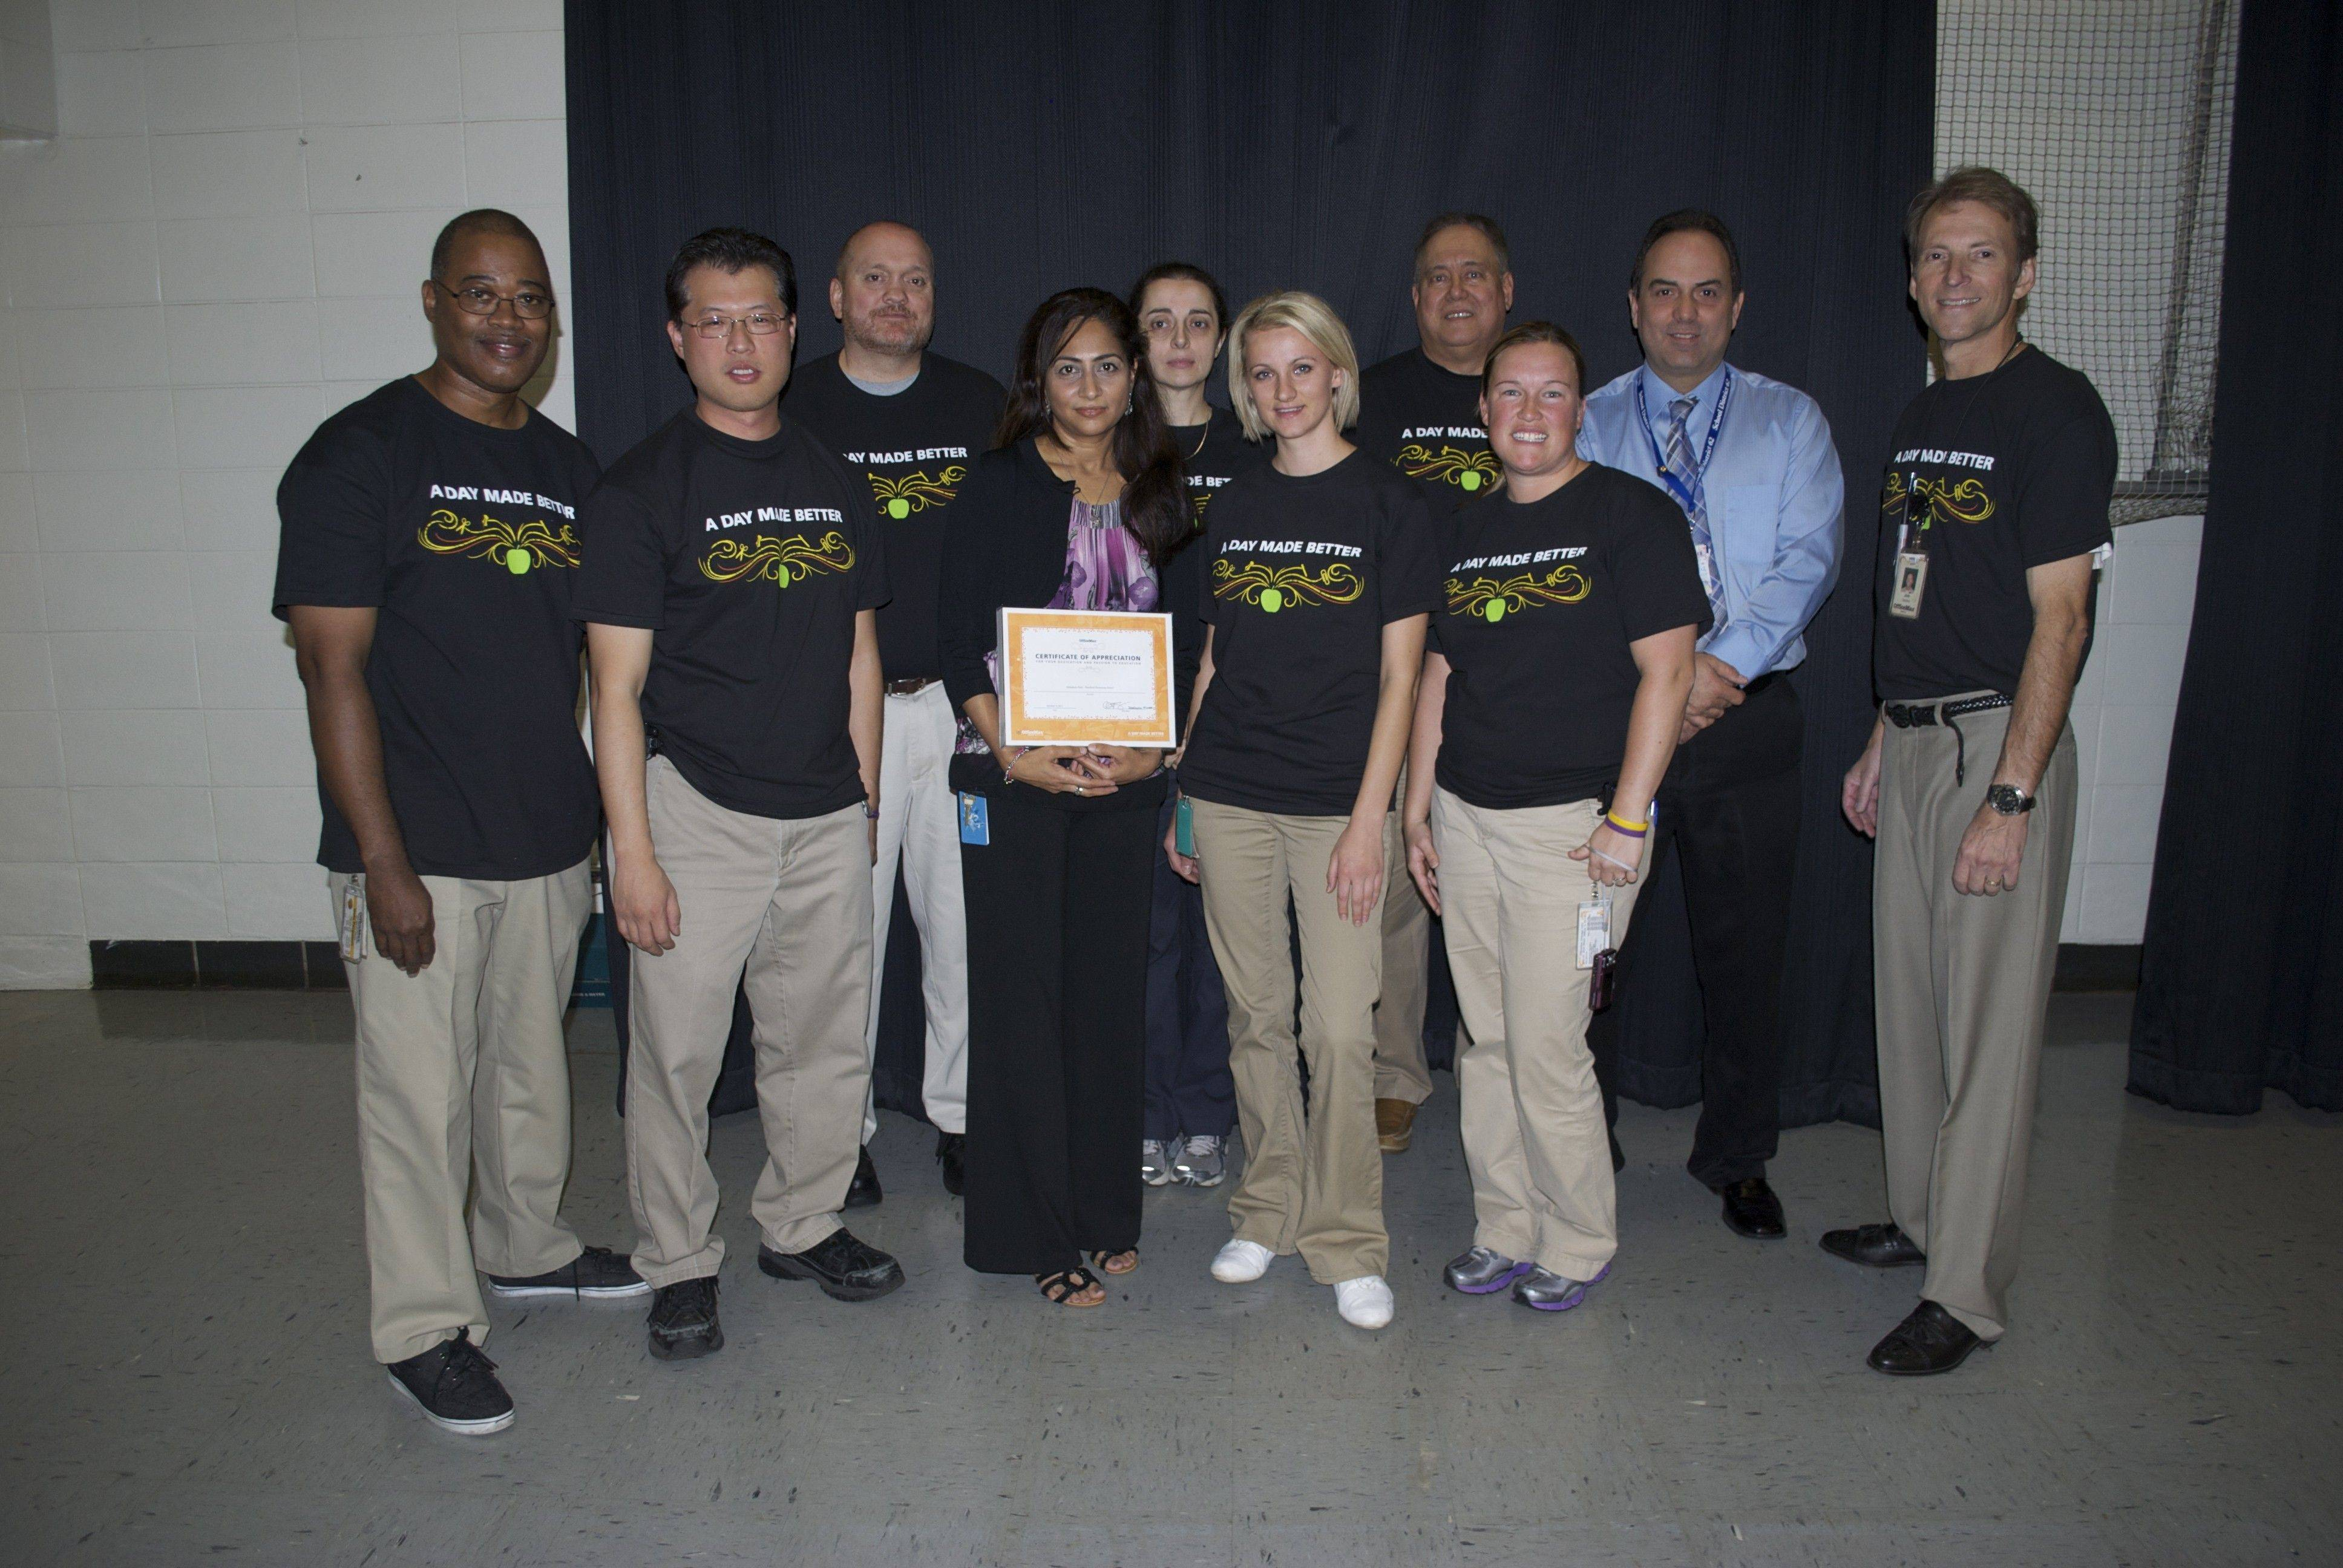 "OfficeMax representatives surprised Plainfield teacher, Mahjabeen Patel, with $1,000 in school supplies and a certificate as part of ""A Day Made Better"" National School Advocacy Program. Pictured, from left: Front row: Dale Ferguson, James Nicholson, honoree Mahjabeen Patel, Barbara Kanoza, Kelly Redican and Jim Delaney; back row: Chris Flaschberger, Ursula Kubowicz, Kirk Gautreau and Plainfield Principal Ray Ruiz."